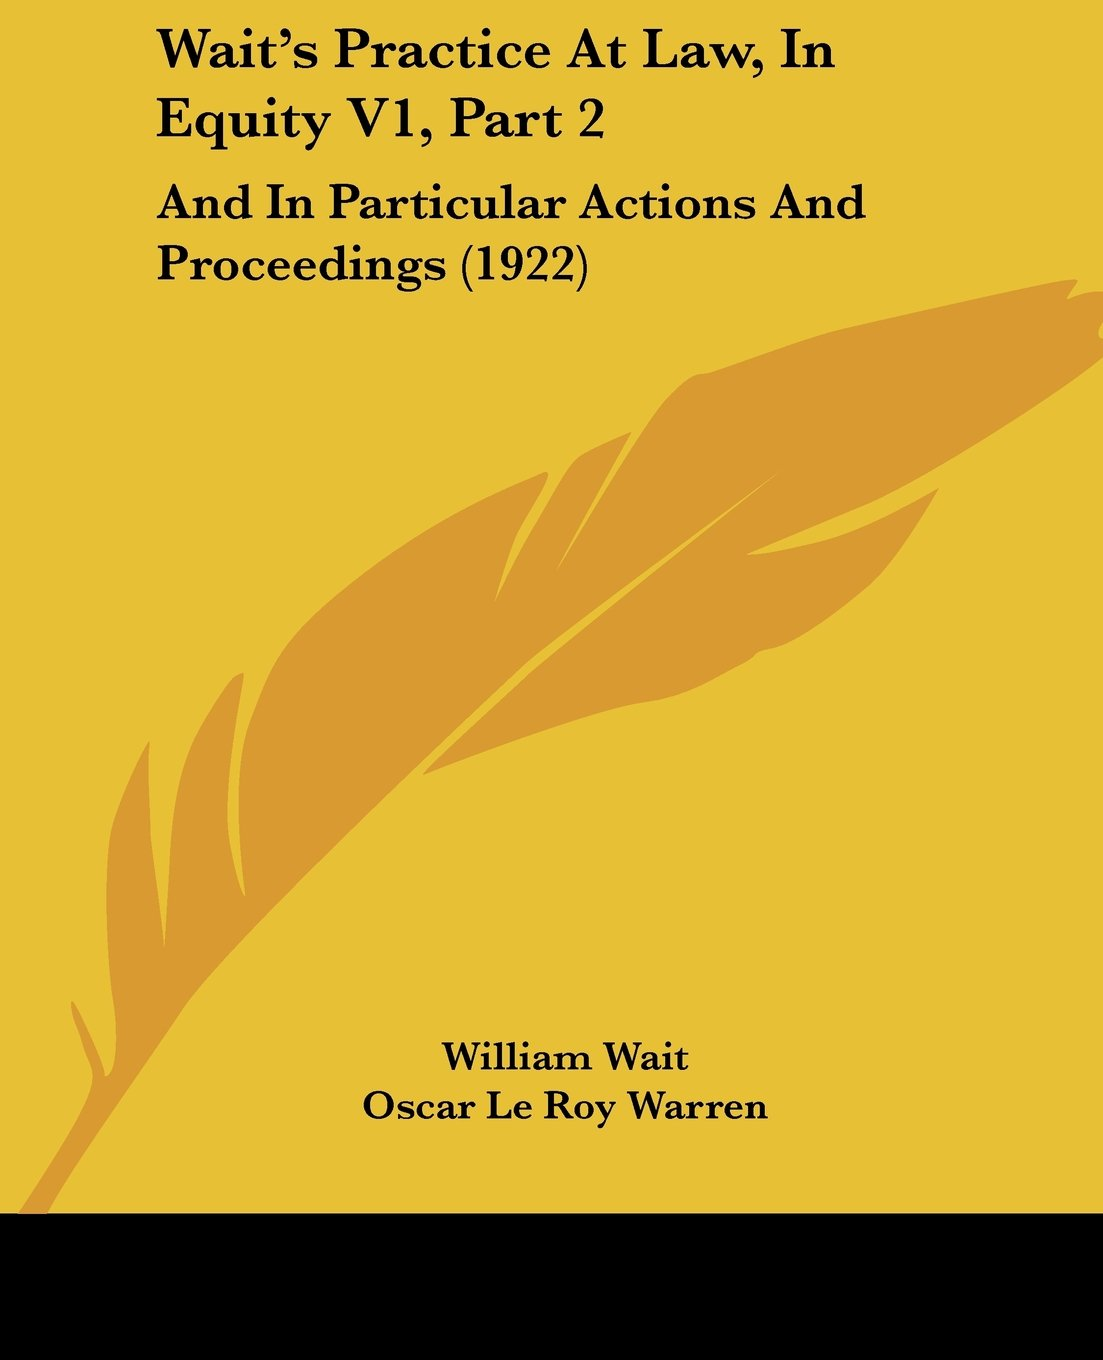 Download Wait's Practice At Law, In Equity V1, Part 2: And In Particular Actions And Proceedings (1922) ebook